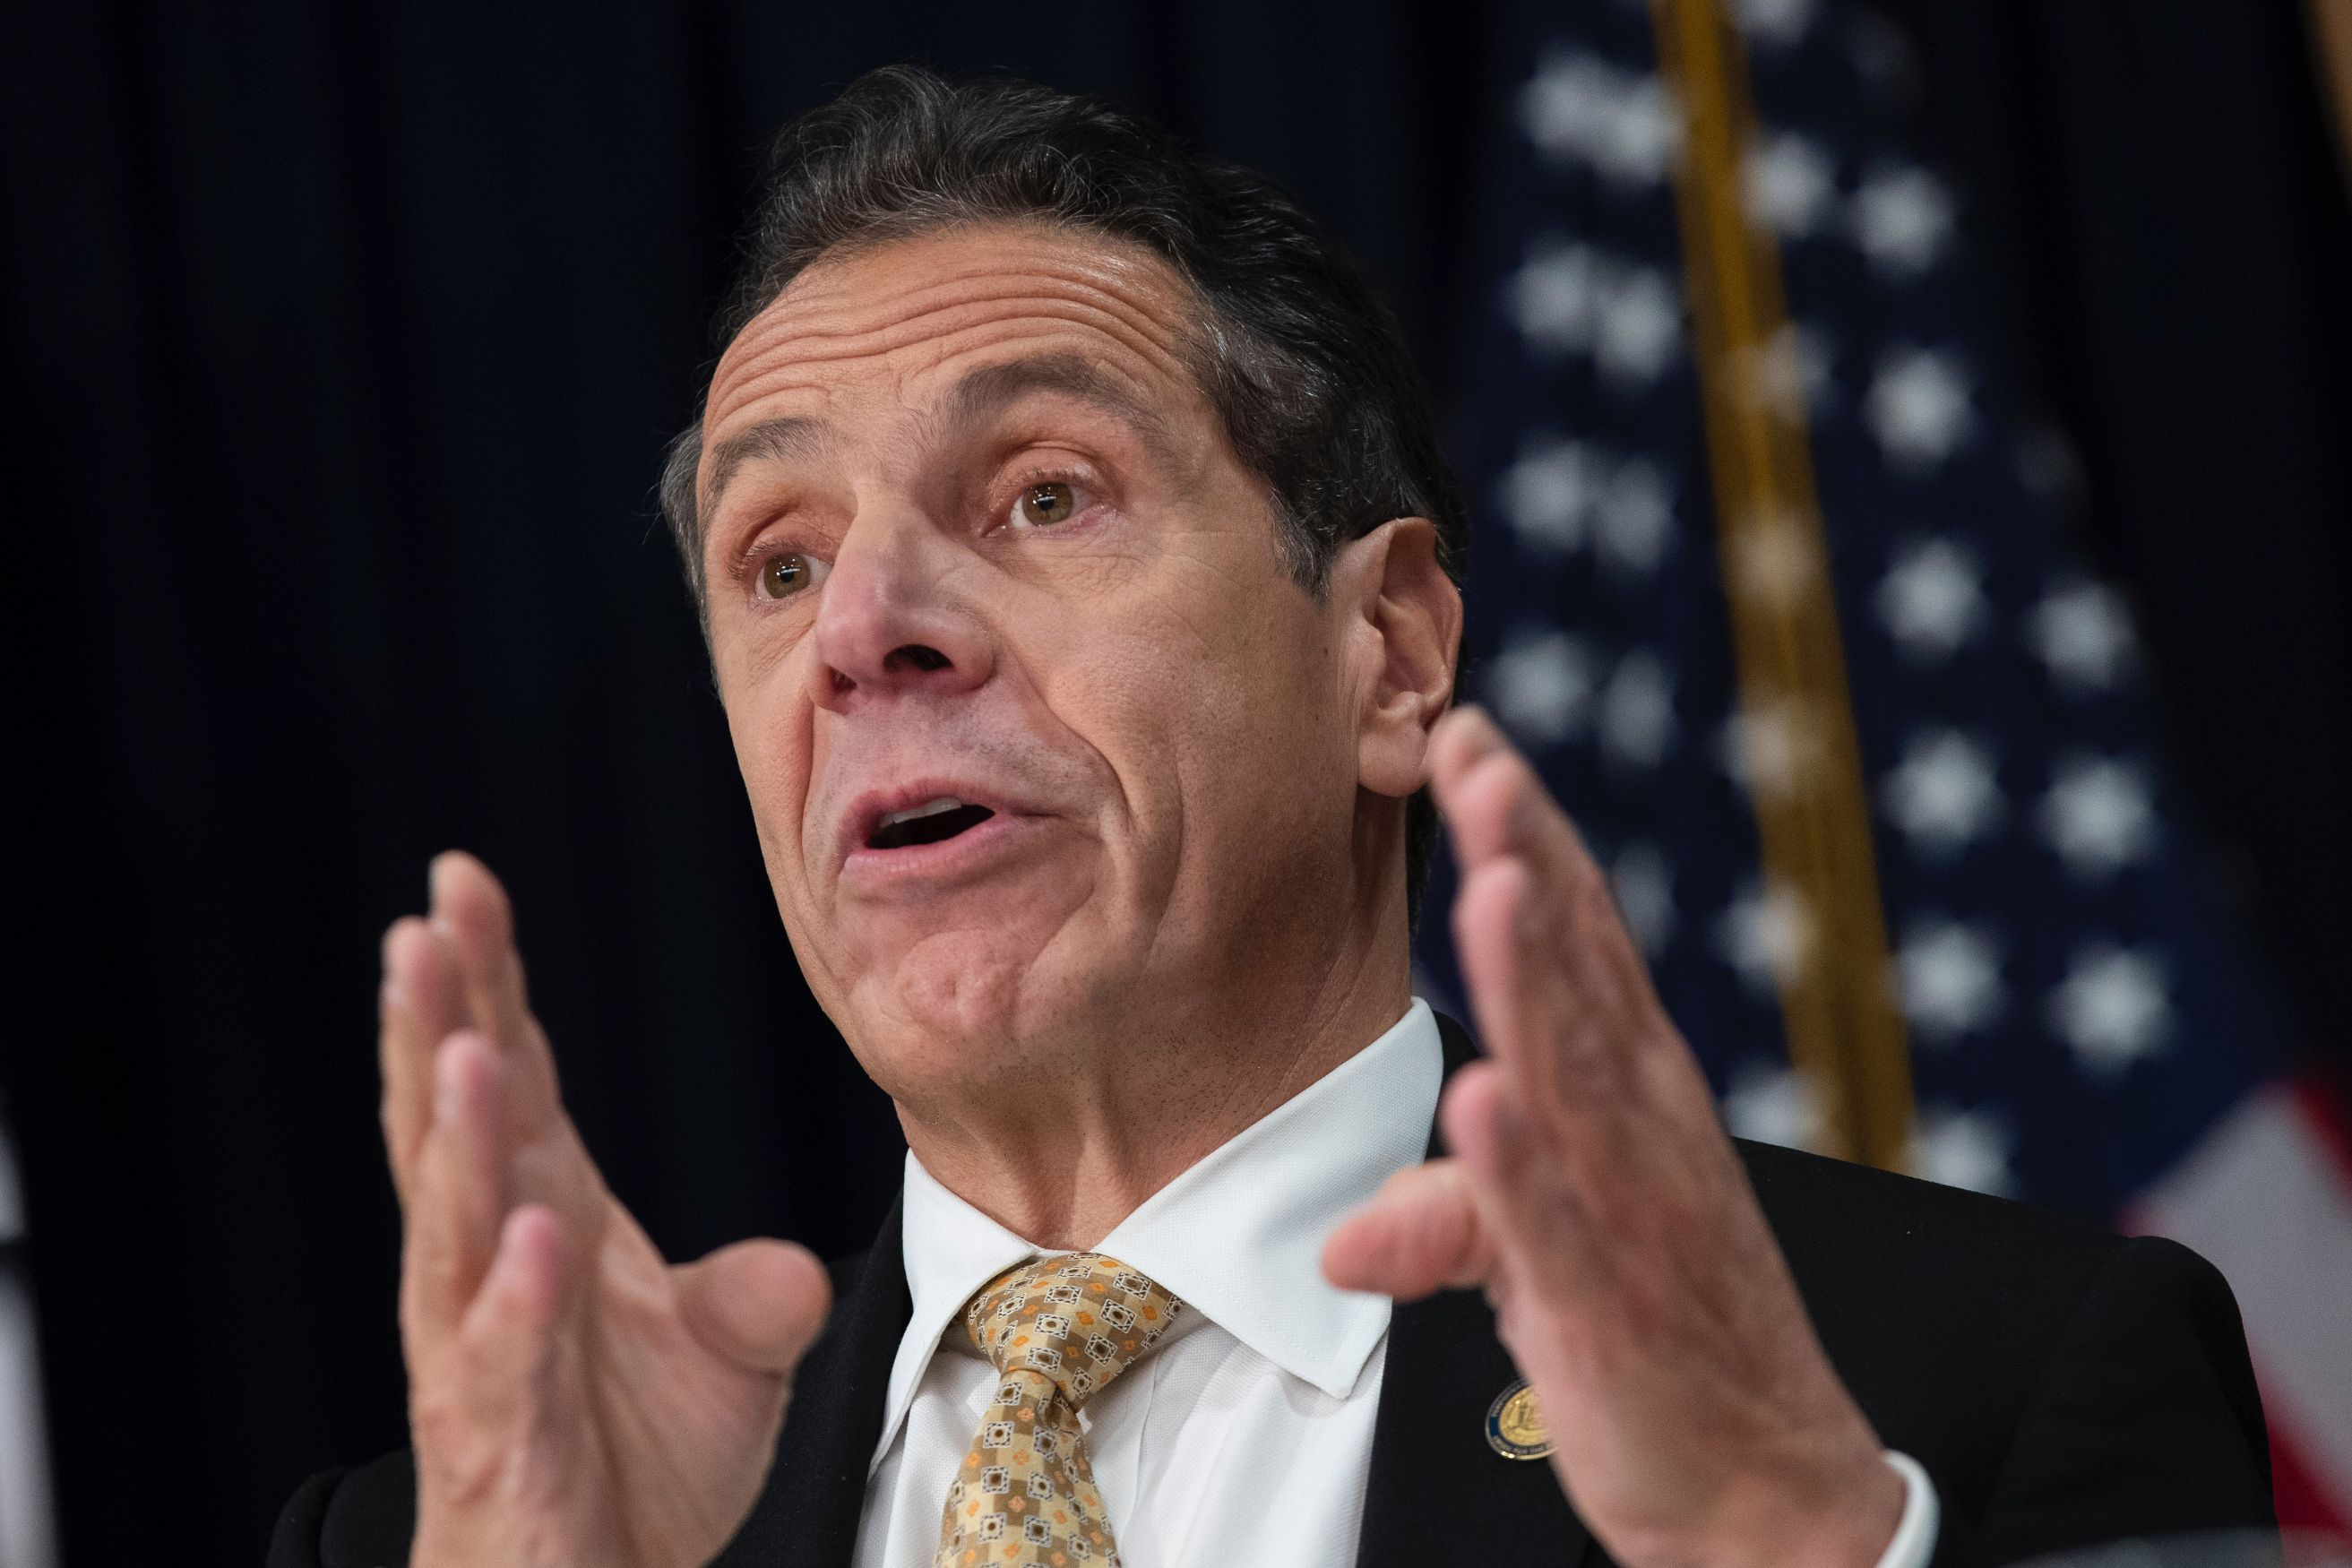 Gov. Cuomo Signs Law Allowing Driver's Licenses for Undocumented Immigrants